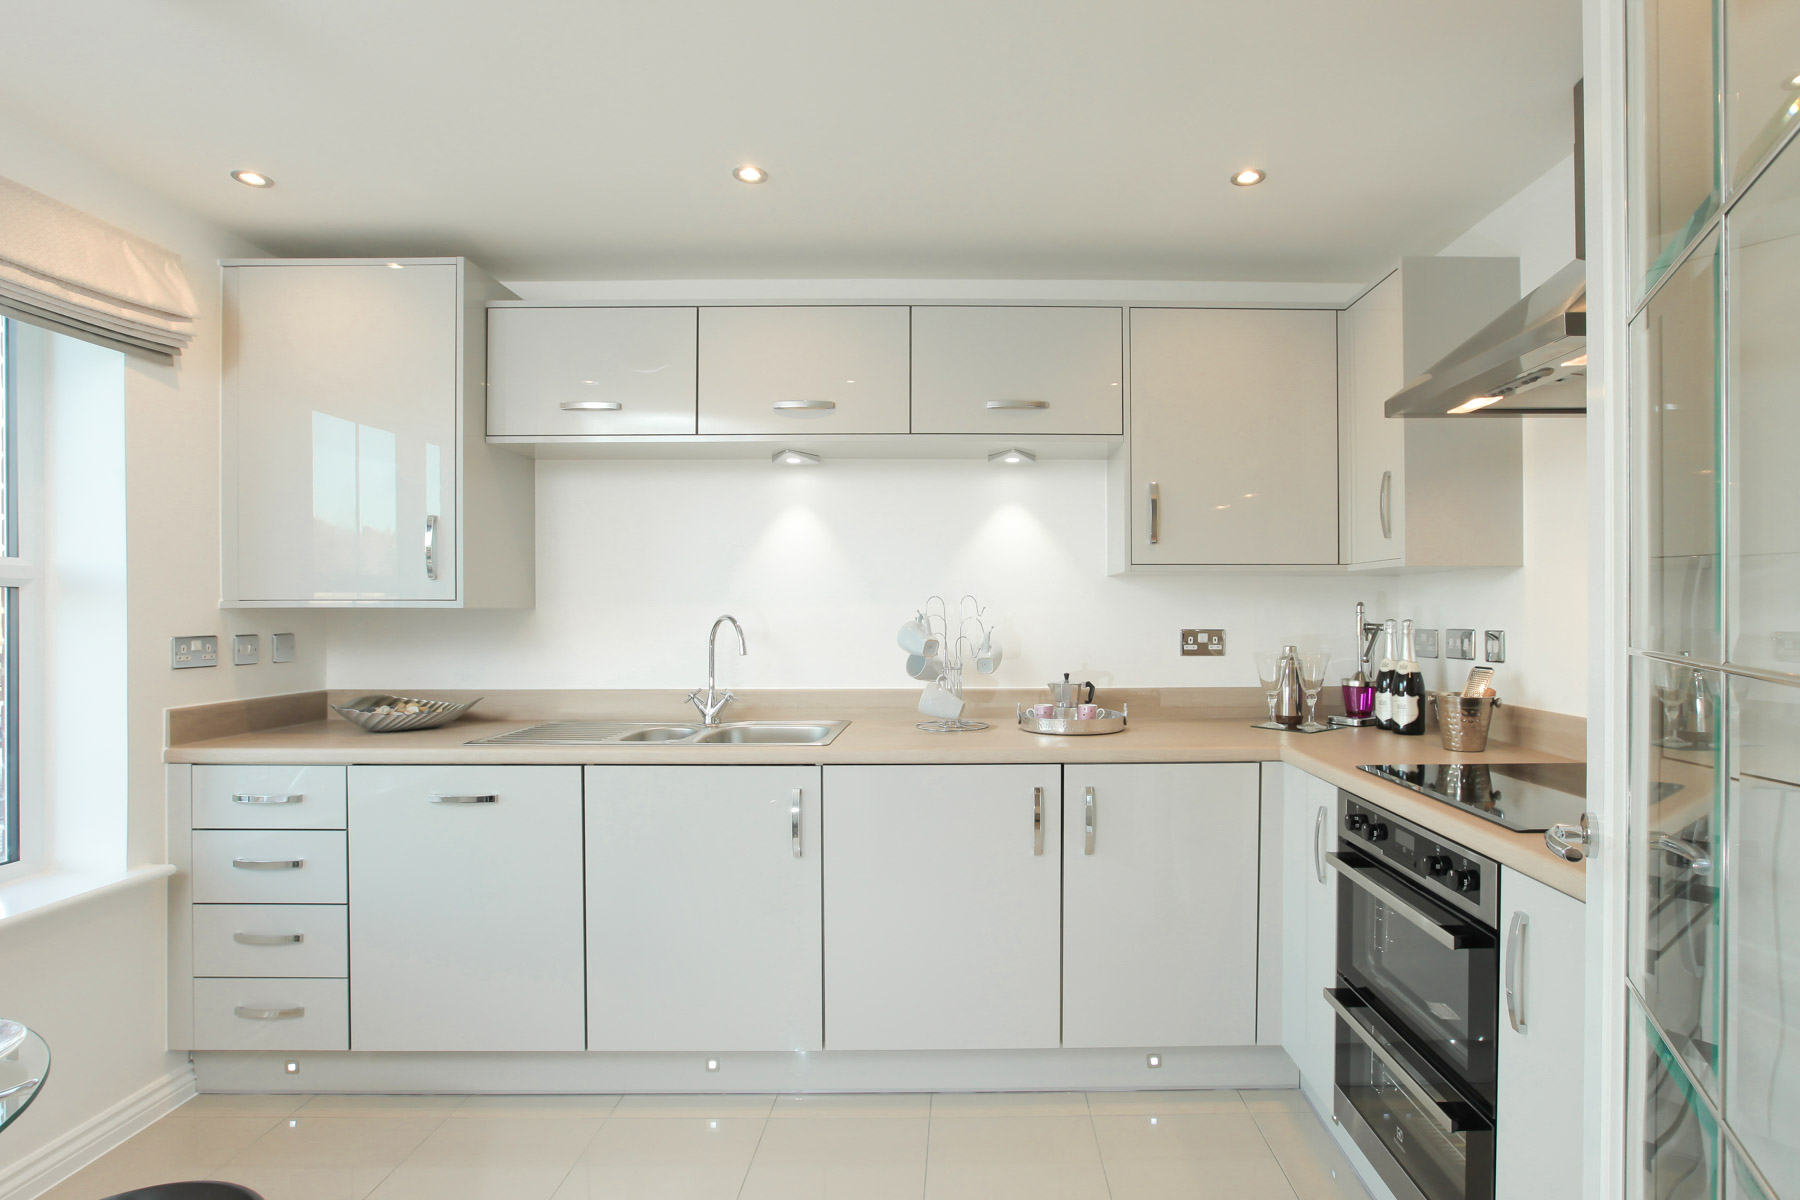 TW Exeter - Plumb Park - Portland example kitchen 2